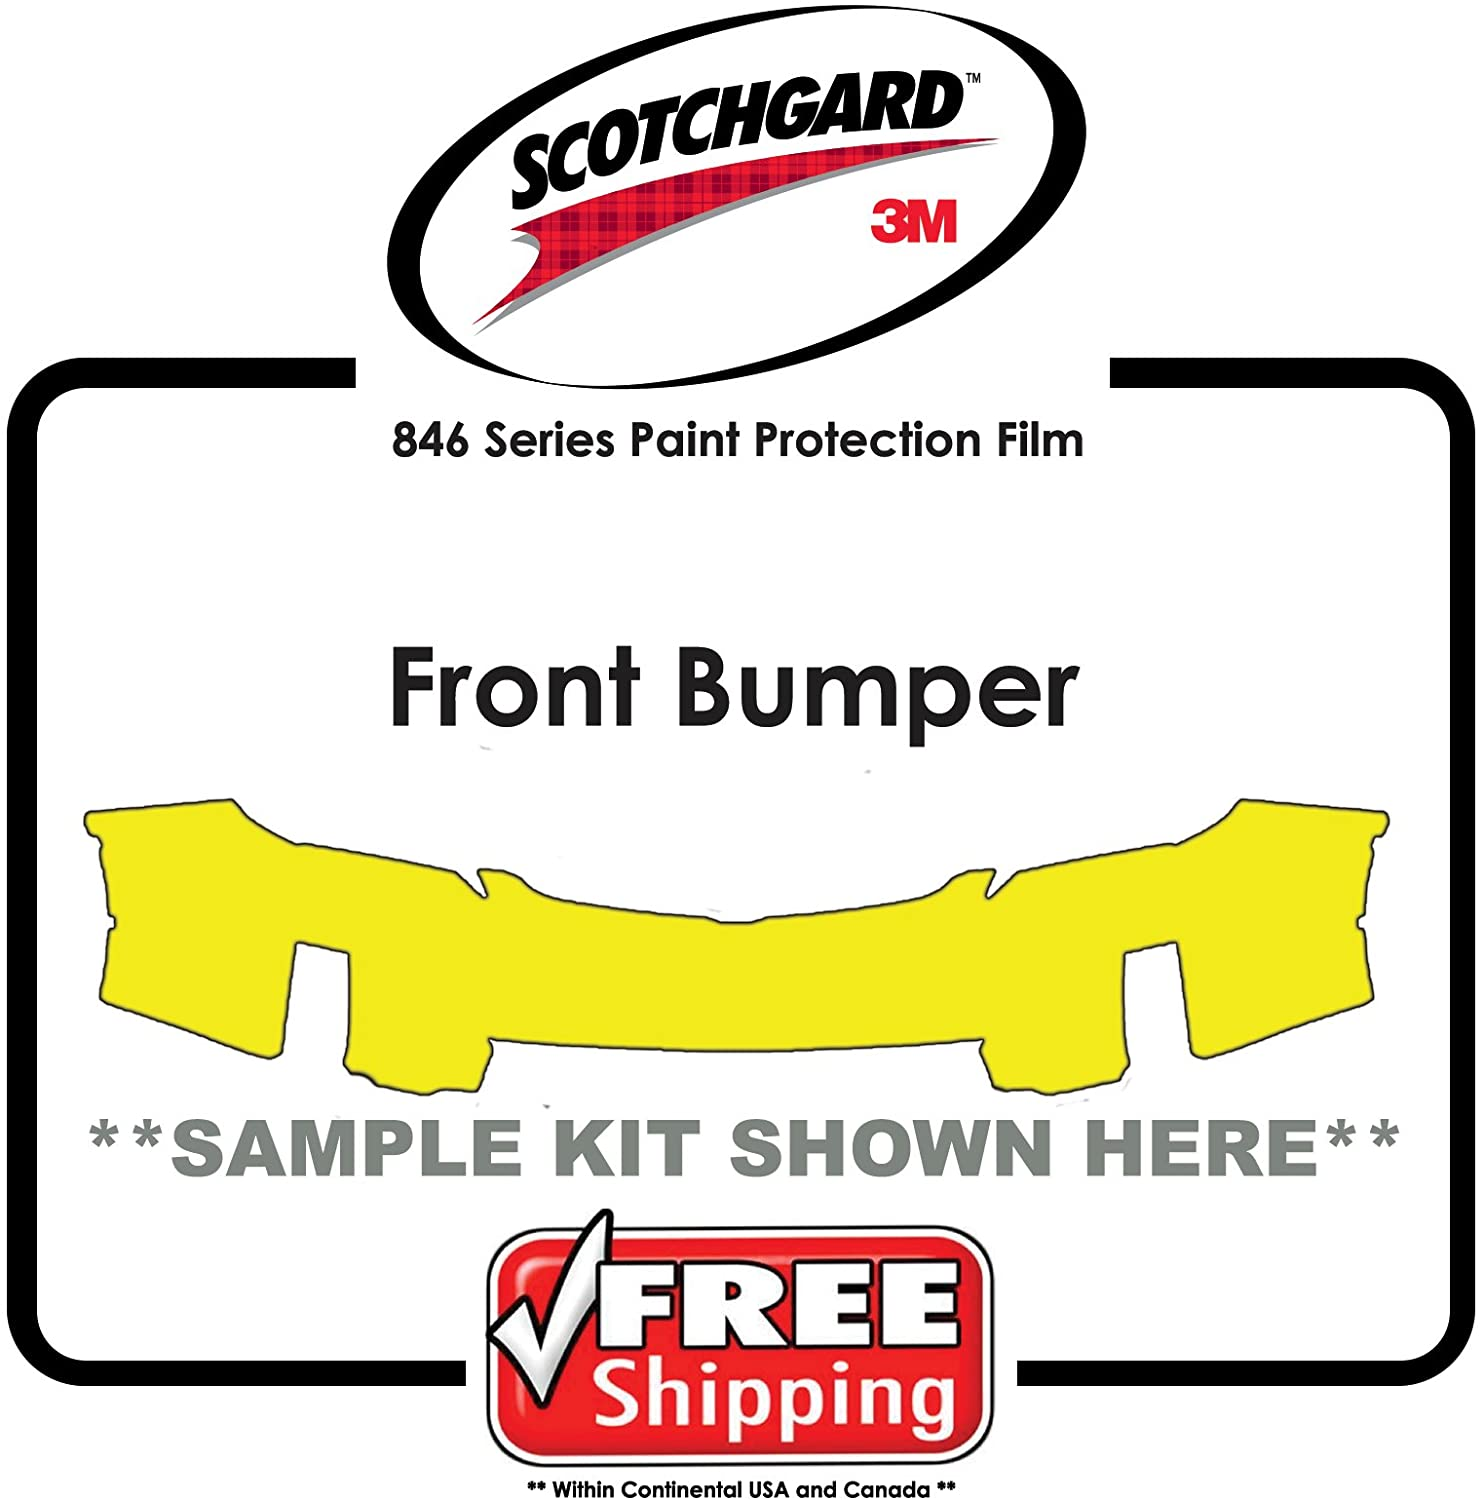 Kits for Scion - 3M 846 Scotchgard Paint Protection Film - Front Bumper Only